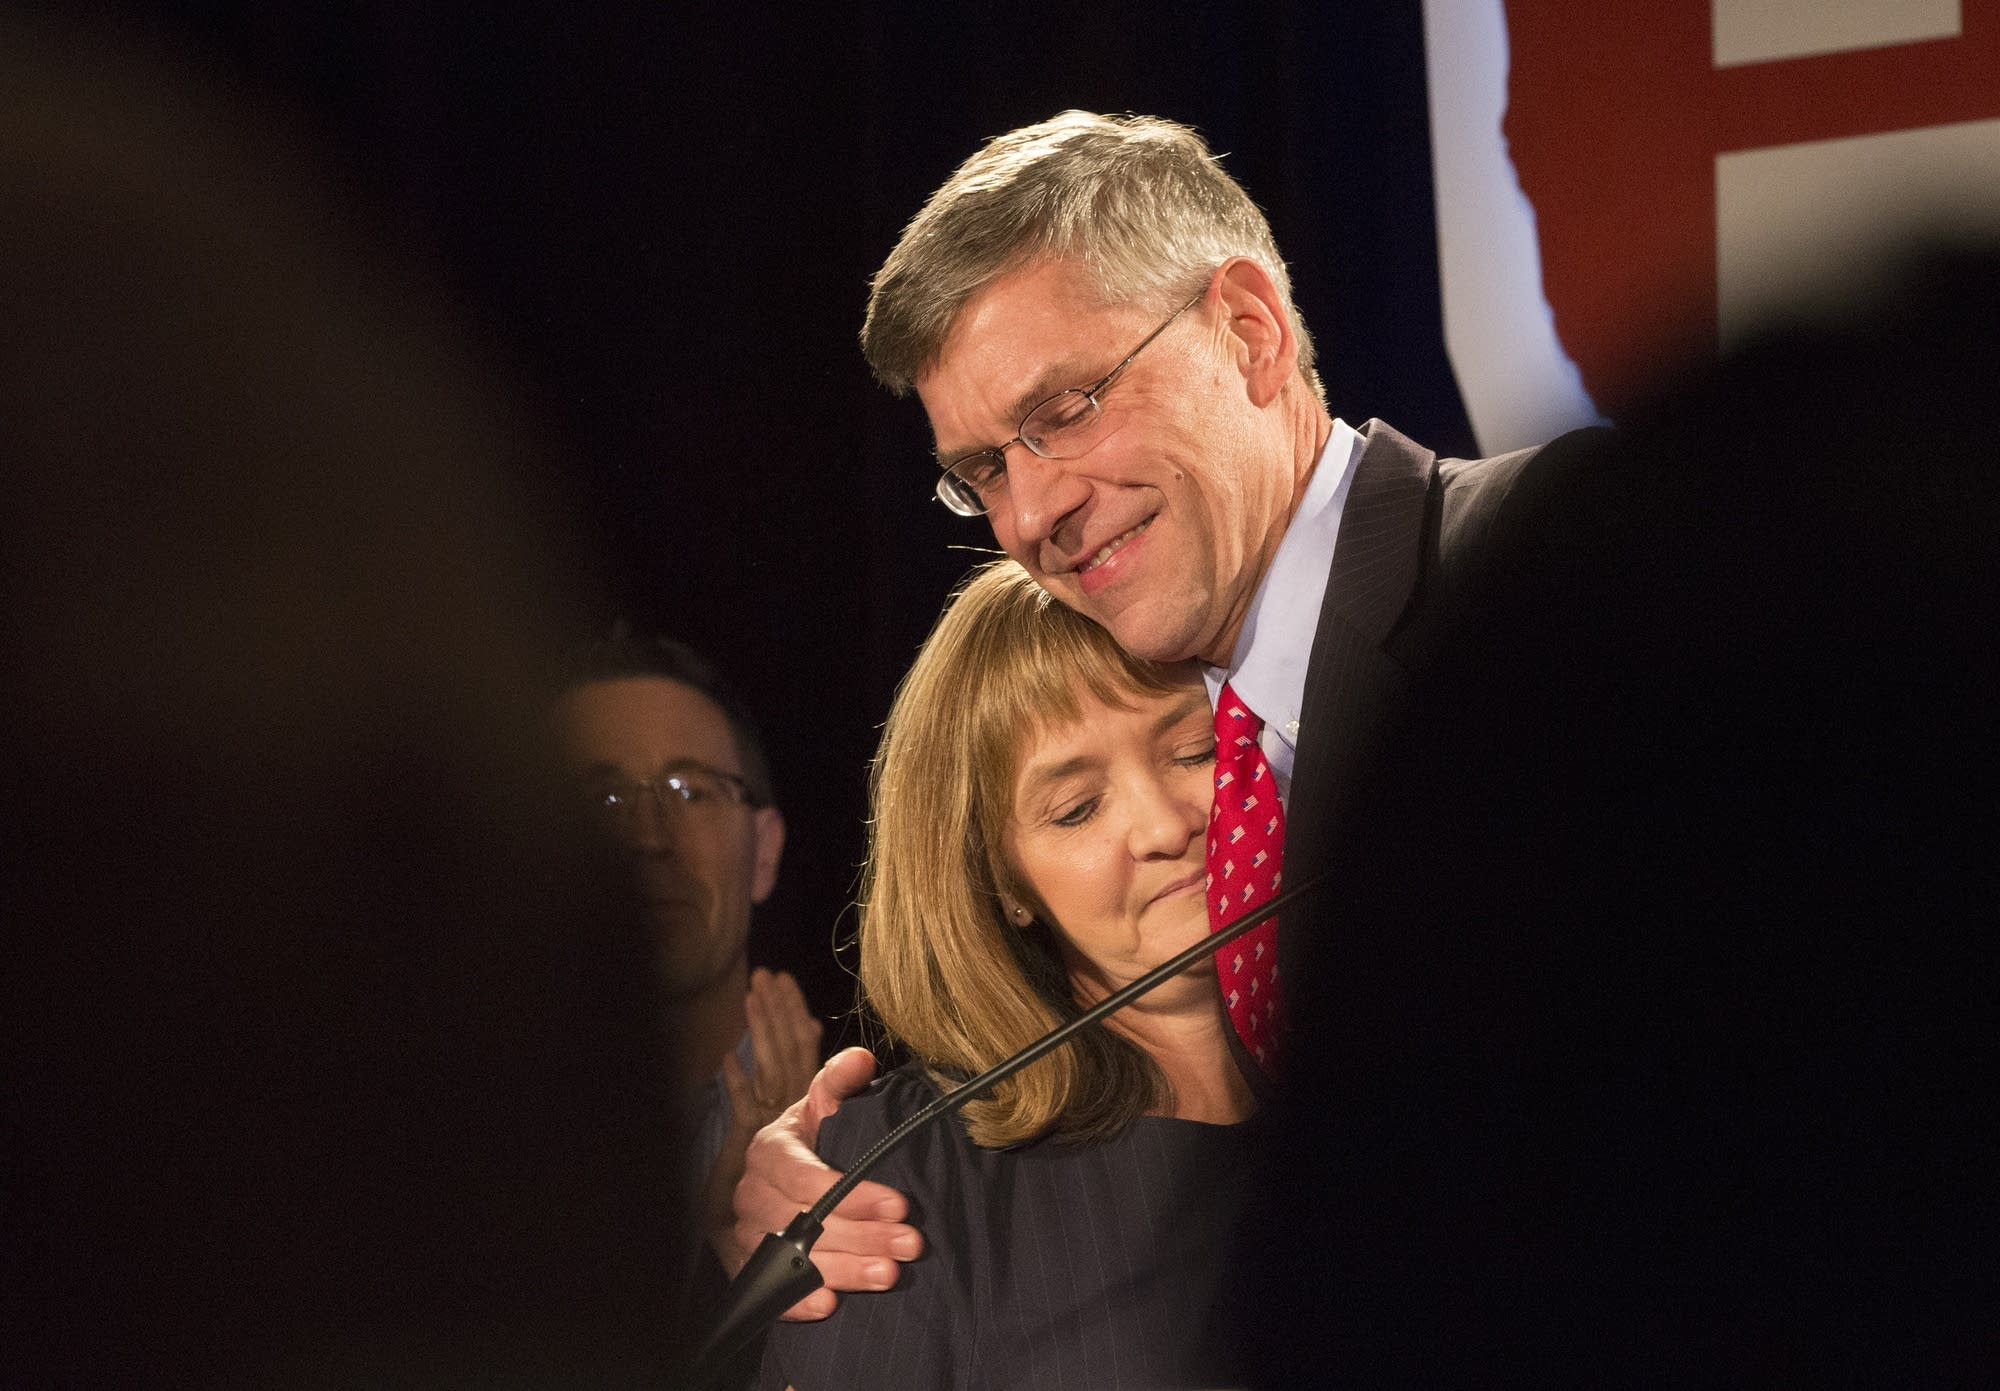 Eric Paulson hugged his wife, Kelly, after conceding defeat.